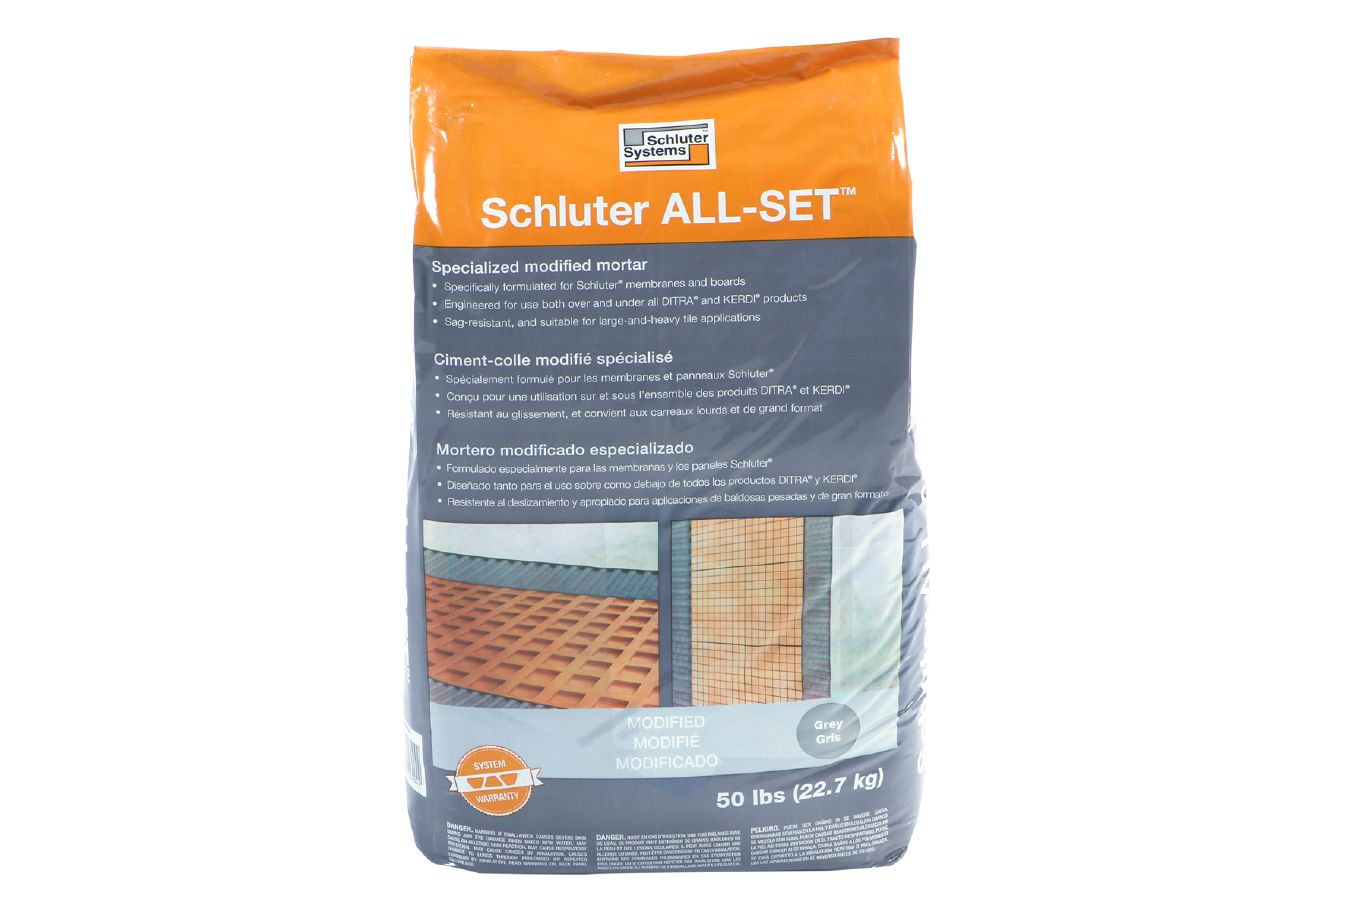 schluter_thinset-ALL-SET-grey.jpg